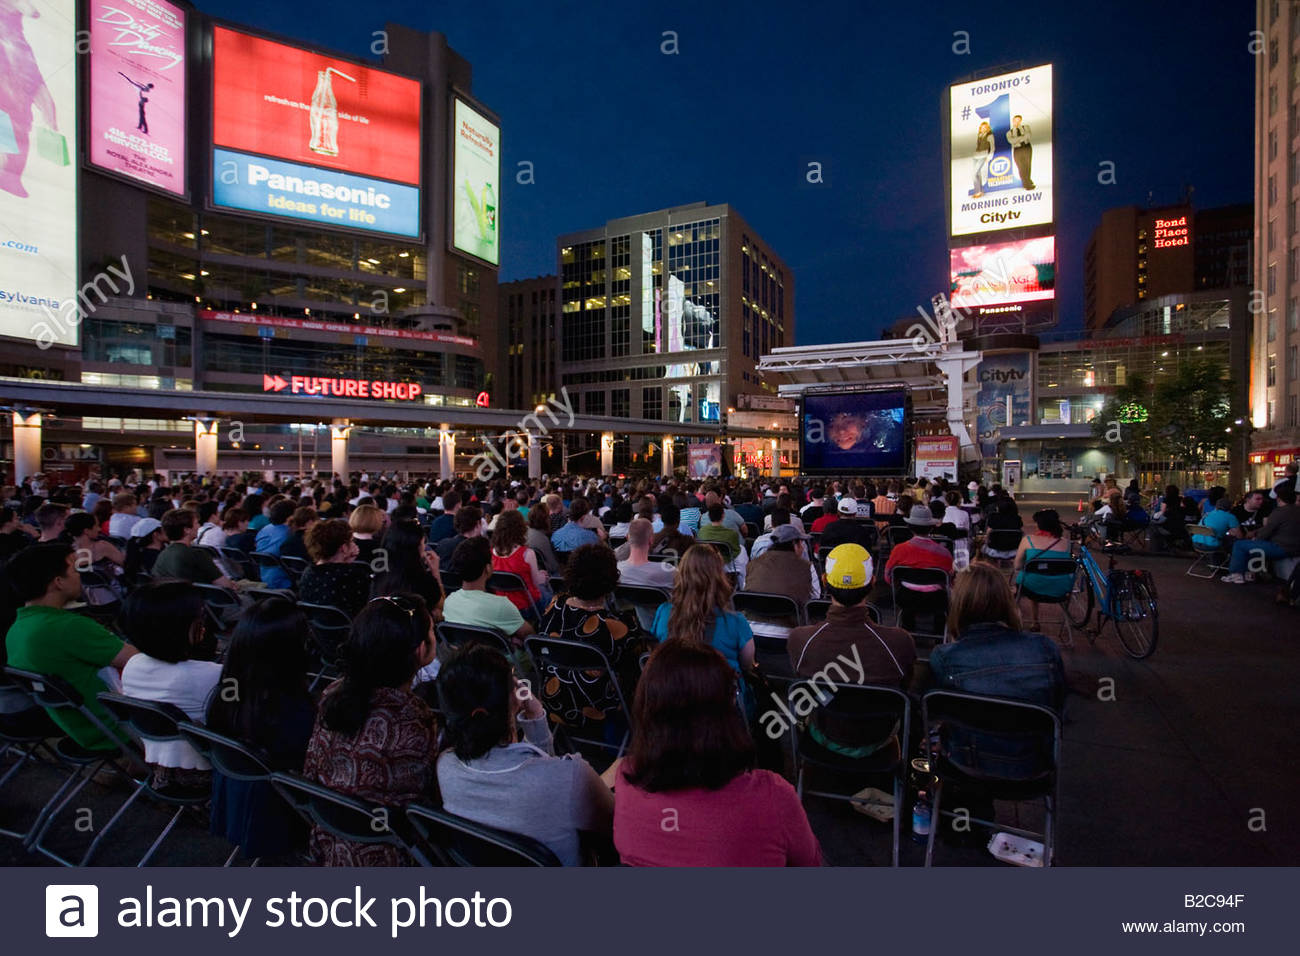 Crowds for outdoor movie night in Younge Dundas Square a public space on a summer night in Toronto Ontario Canada - Stock Image